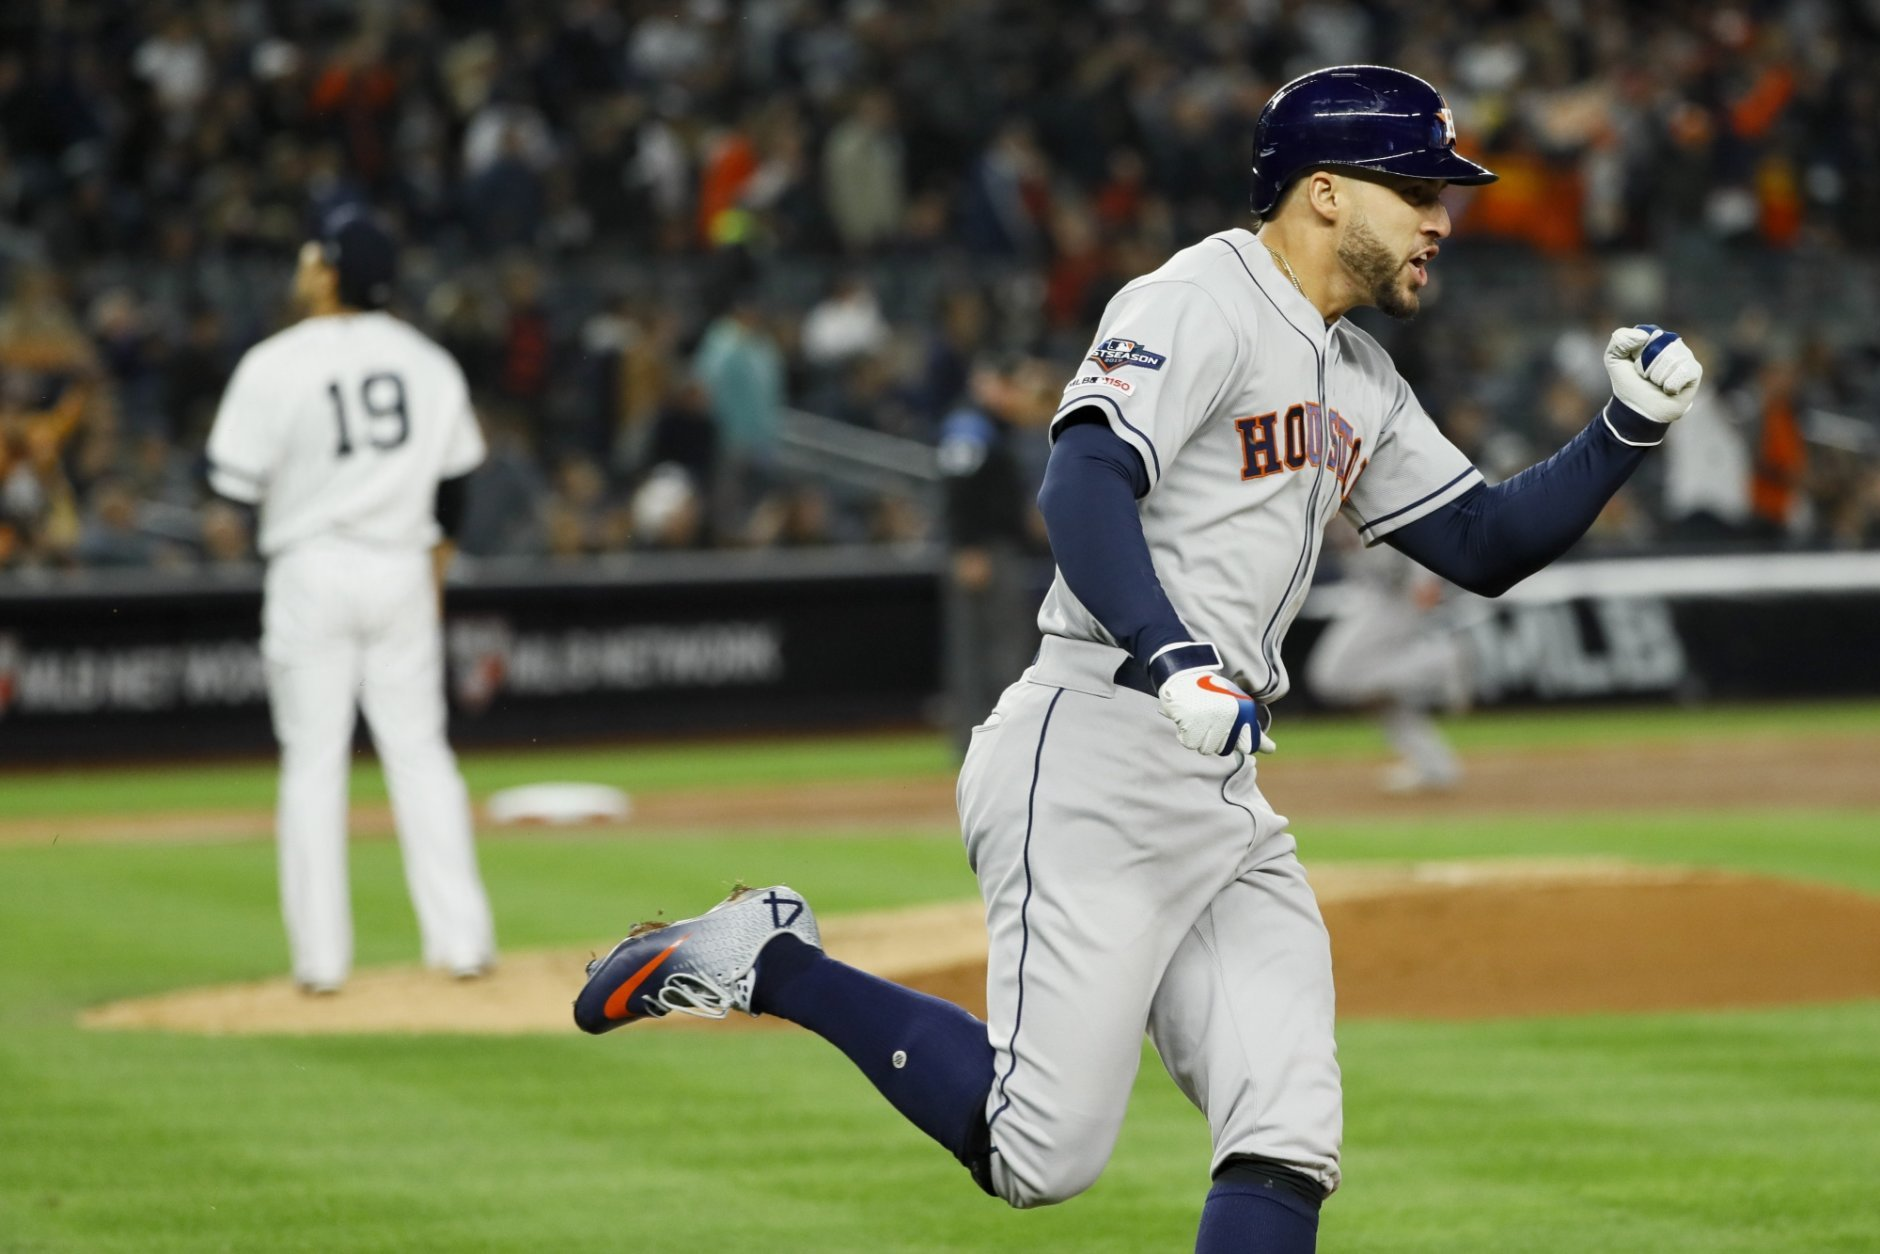 <p><strong>George Wallace, sports director</strong></p> <p>World Series Prediction: Astros in six games</p> <p>World Series MVP: George Springer</p> <p>Bold Prediction: Each team has a walk-off win in the series.</p>